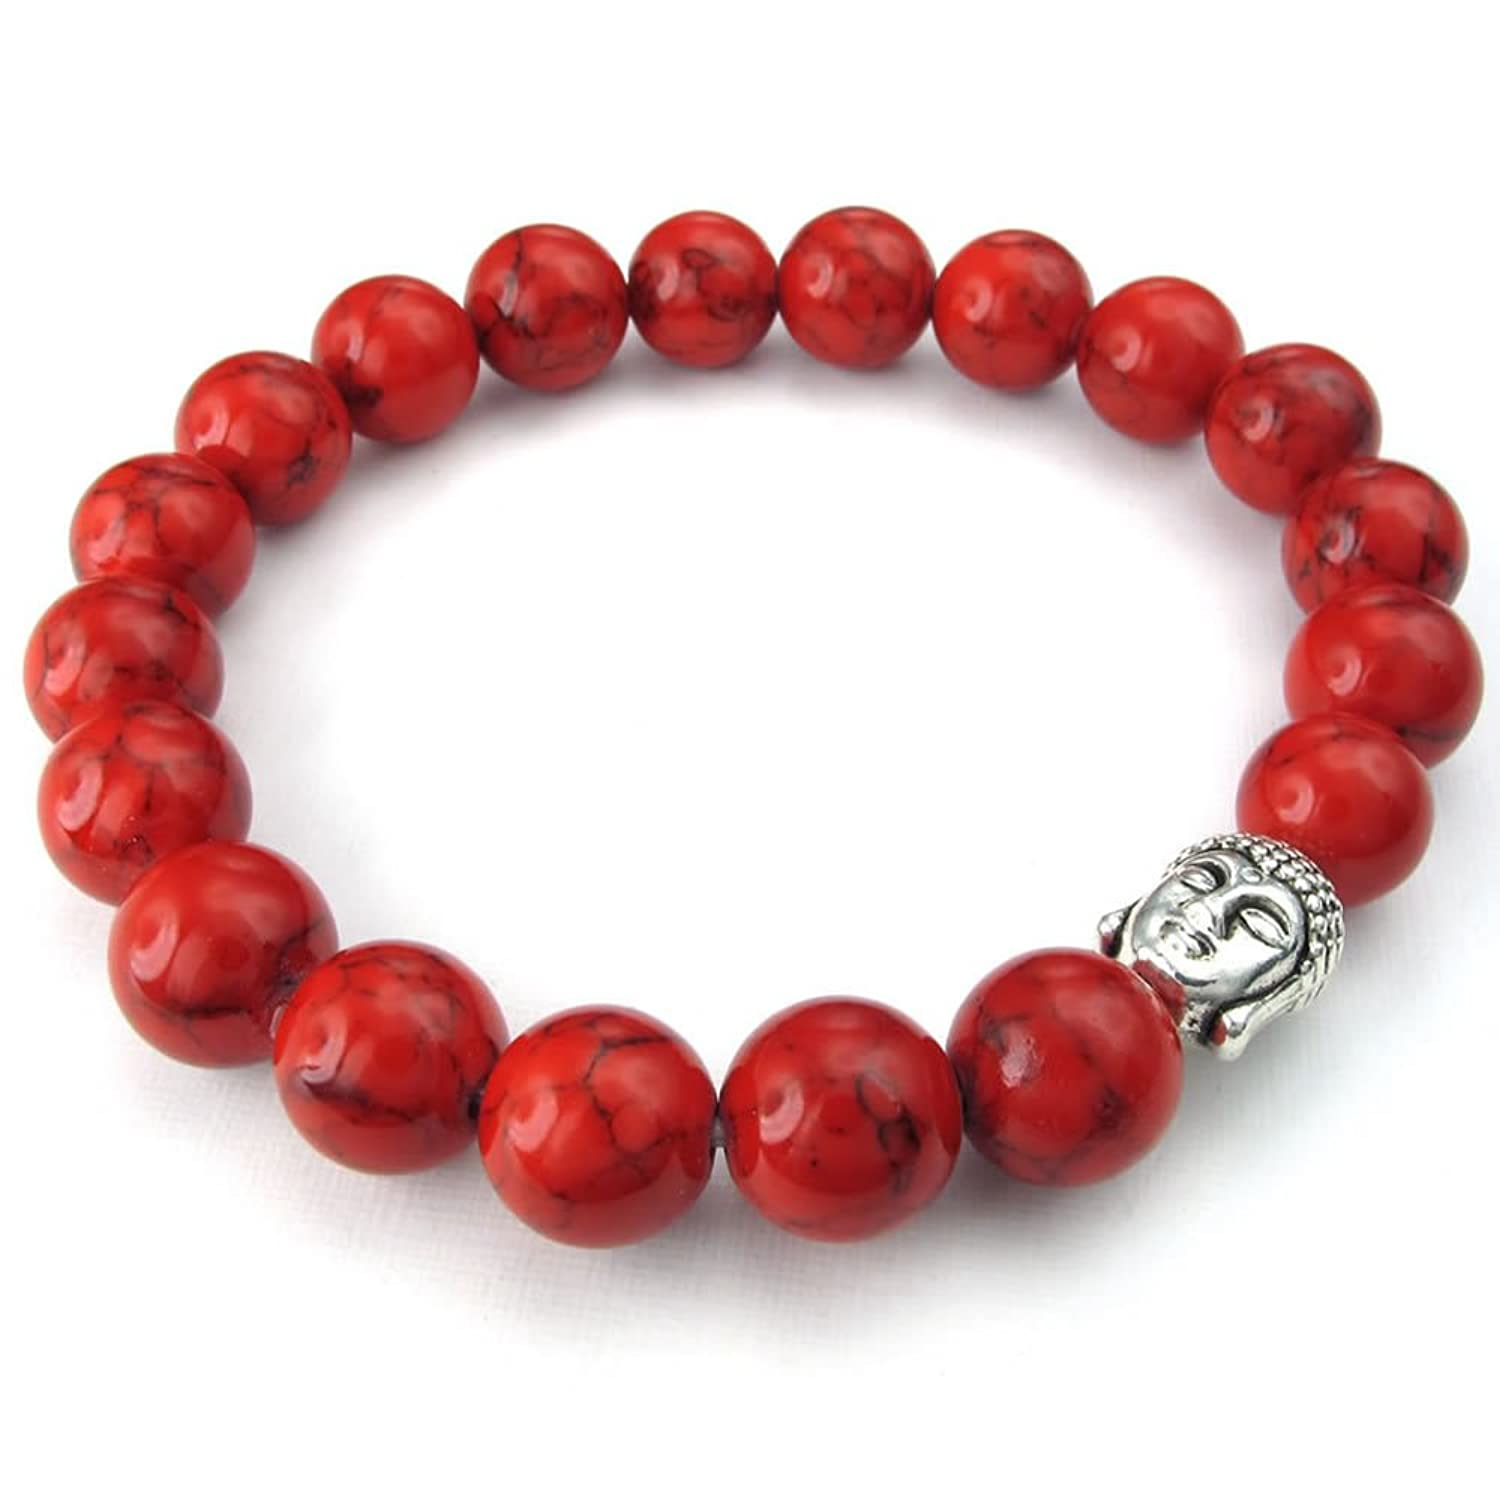 KONOV 10-12mm Natural Energy Stone Beads Gemstone Mens Womens Bracelet, Buddha Mala, Red Silver